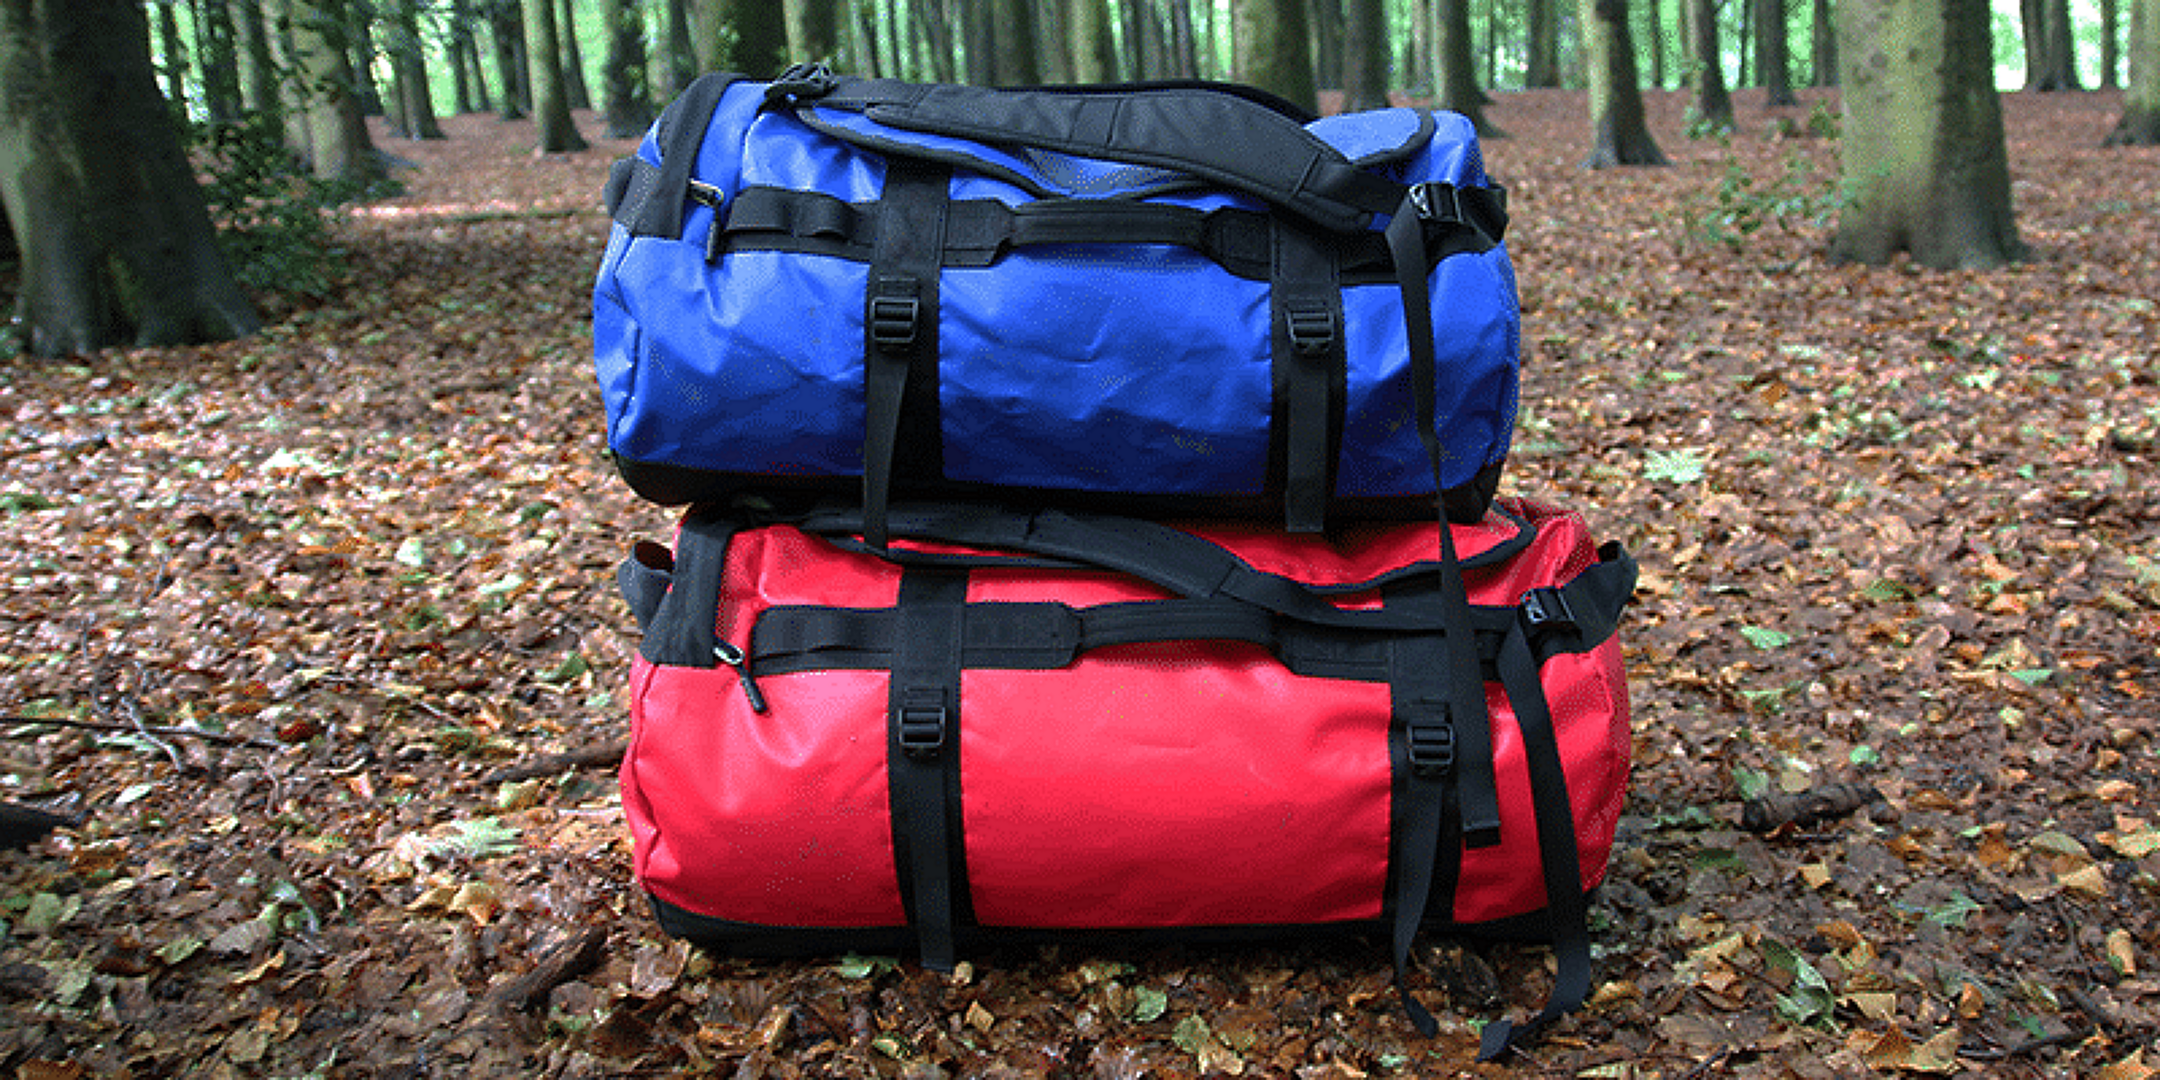 2 Duffel Bags in the woods